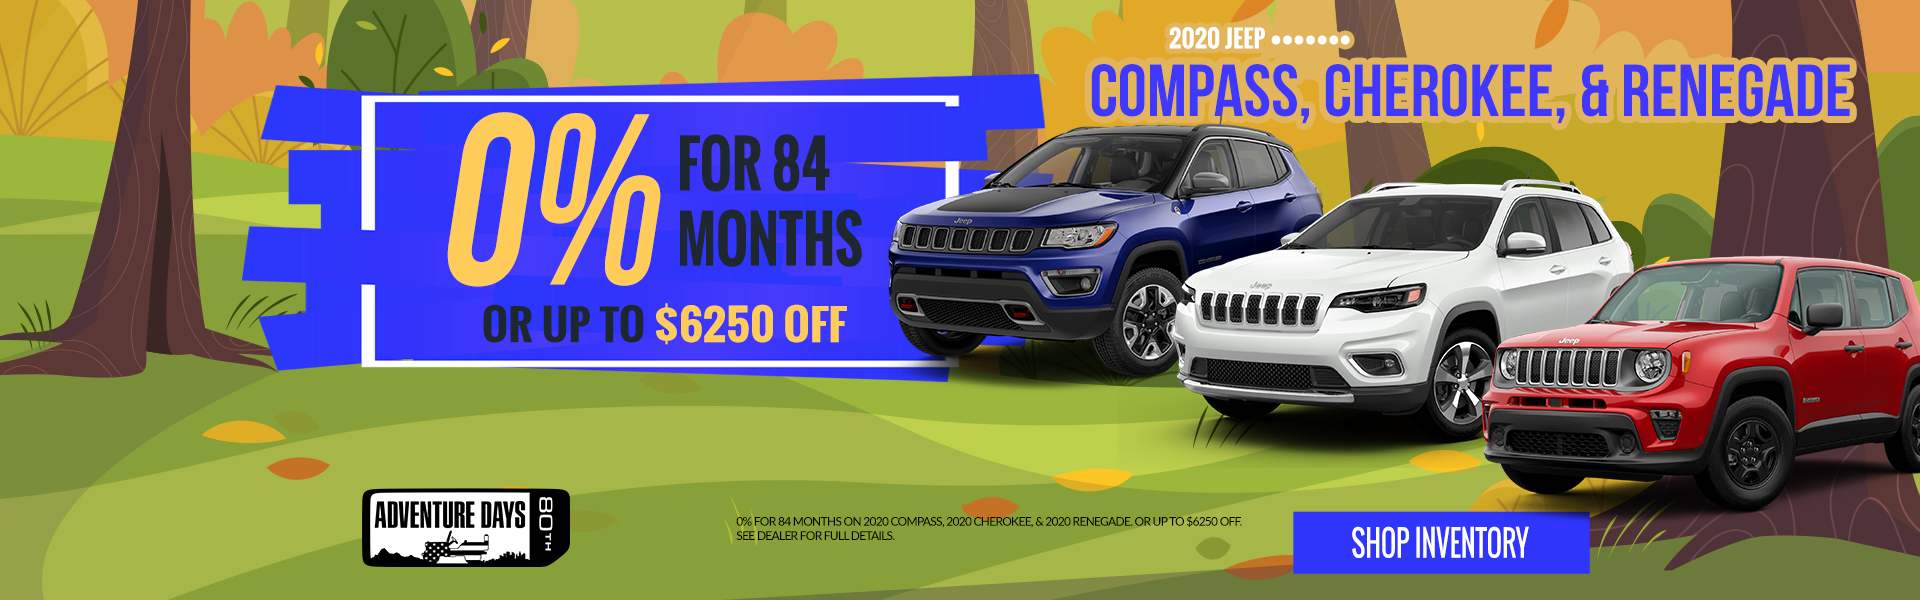 ALL 2020 WRANGLER MODELS RECEIVE FRIENDS AND FAMILY PRICING  HURRY WHILE SUPPILES LAST